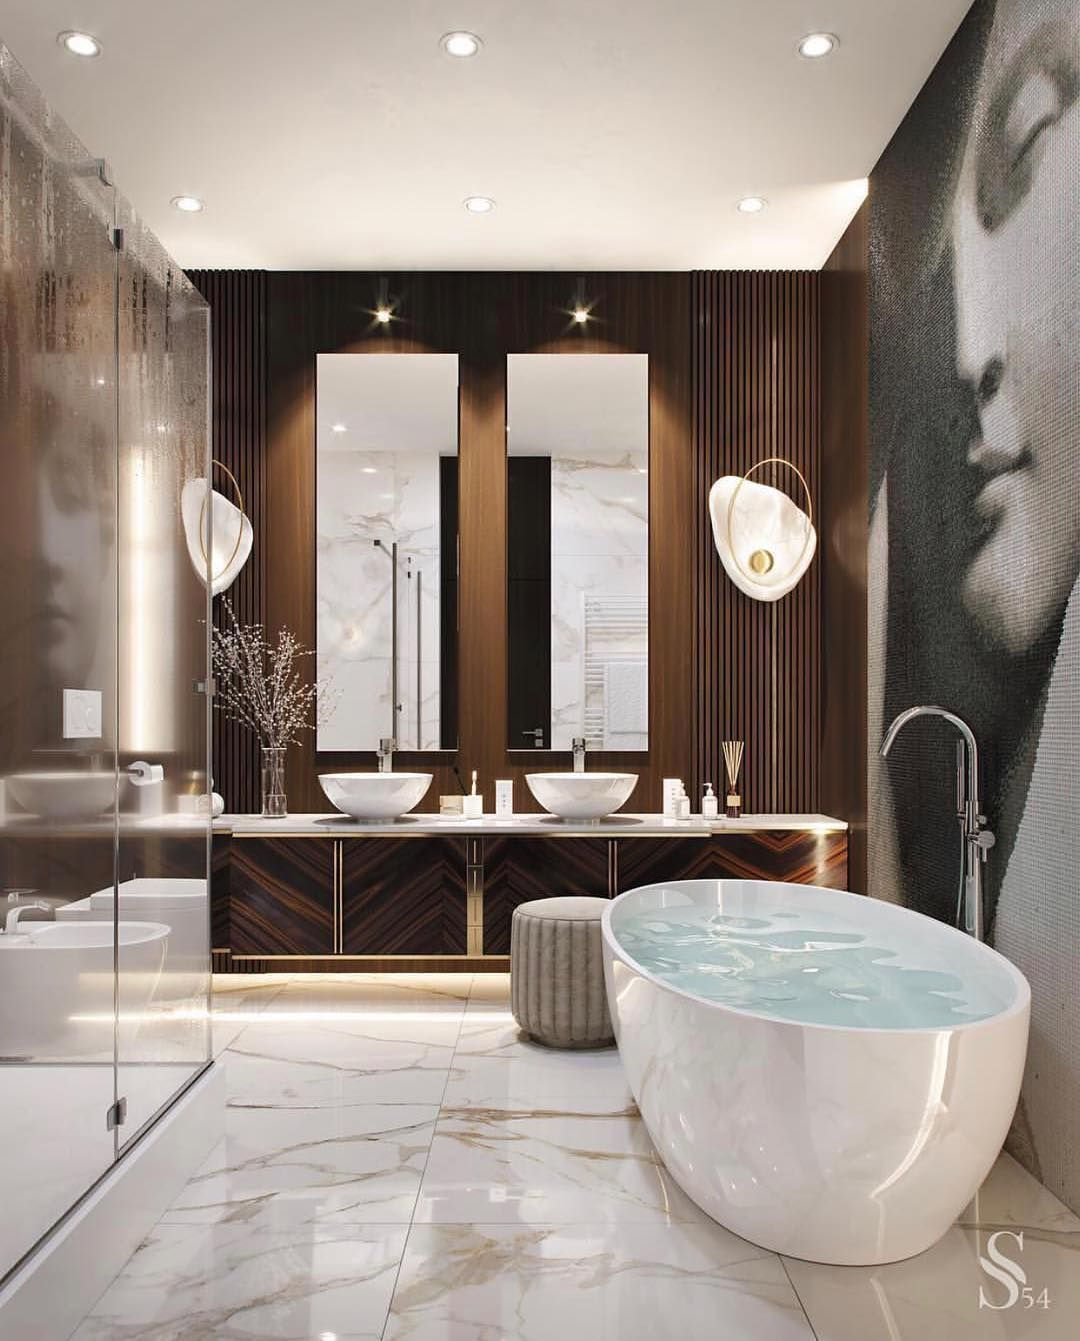 Download Catalogue With Images Glamorous Bathroom Luxury